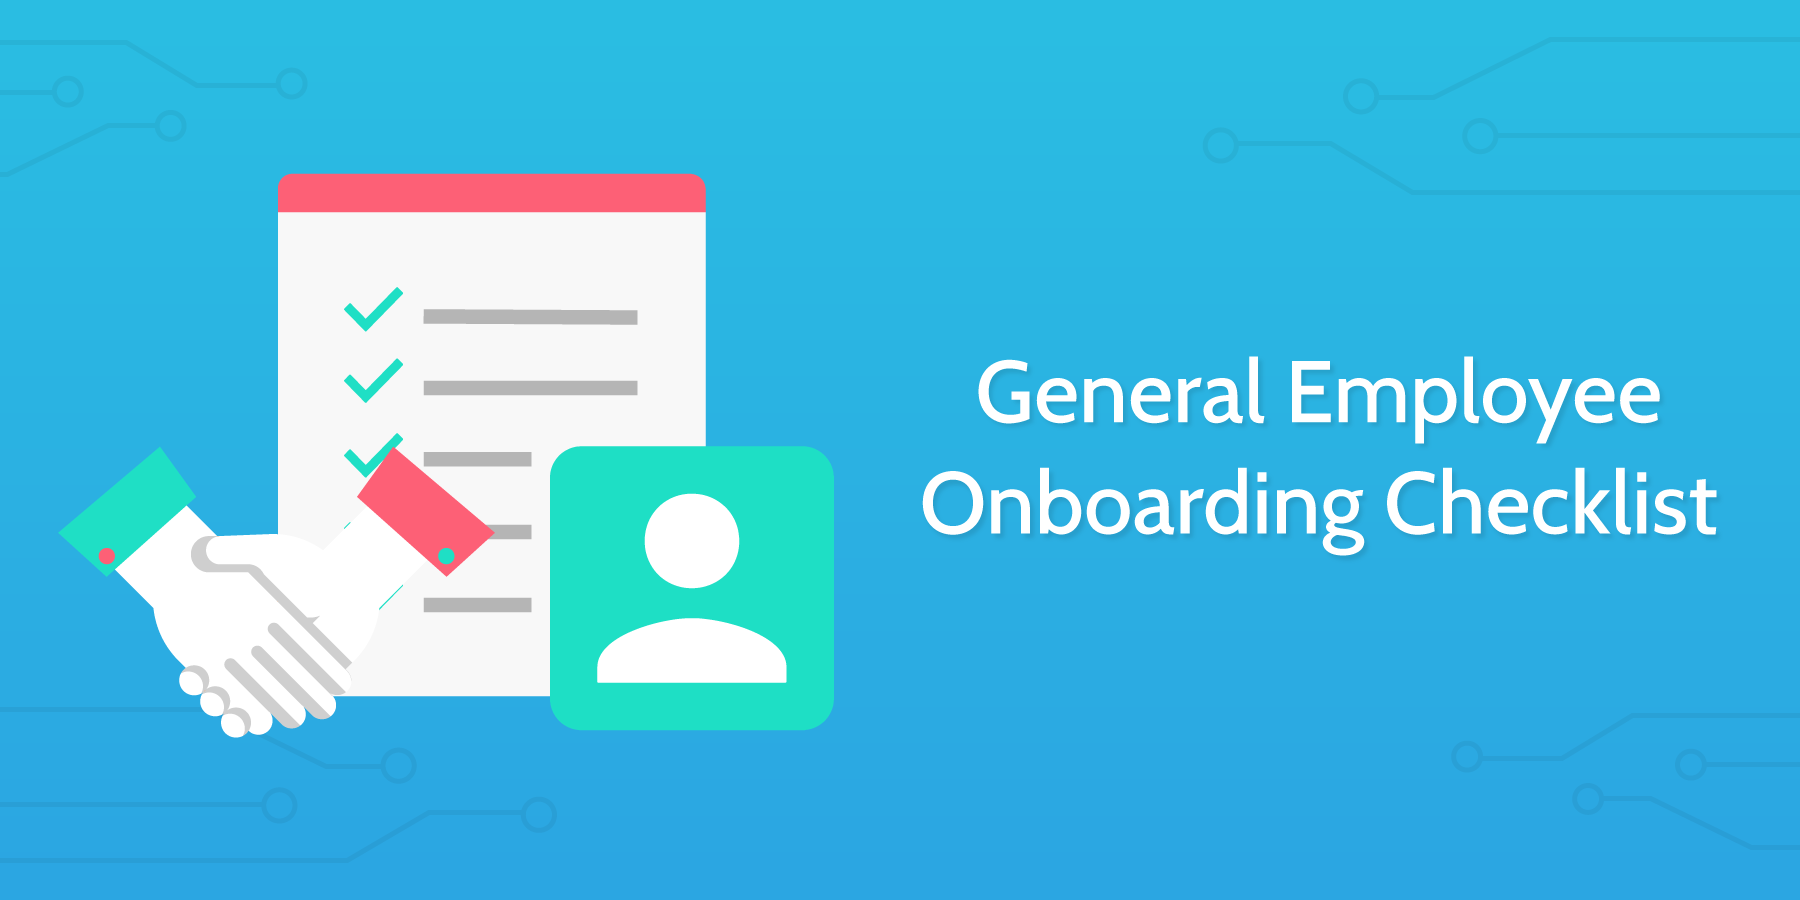 how to conduct an interview General Employee Onboarding Checklist